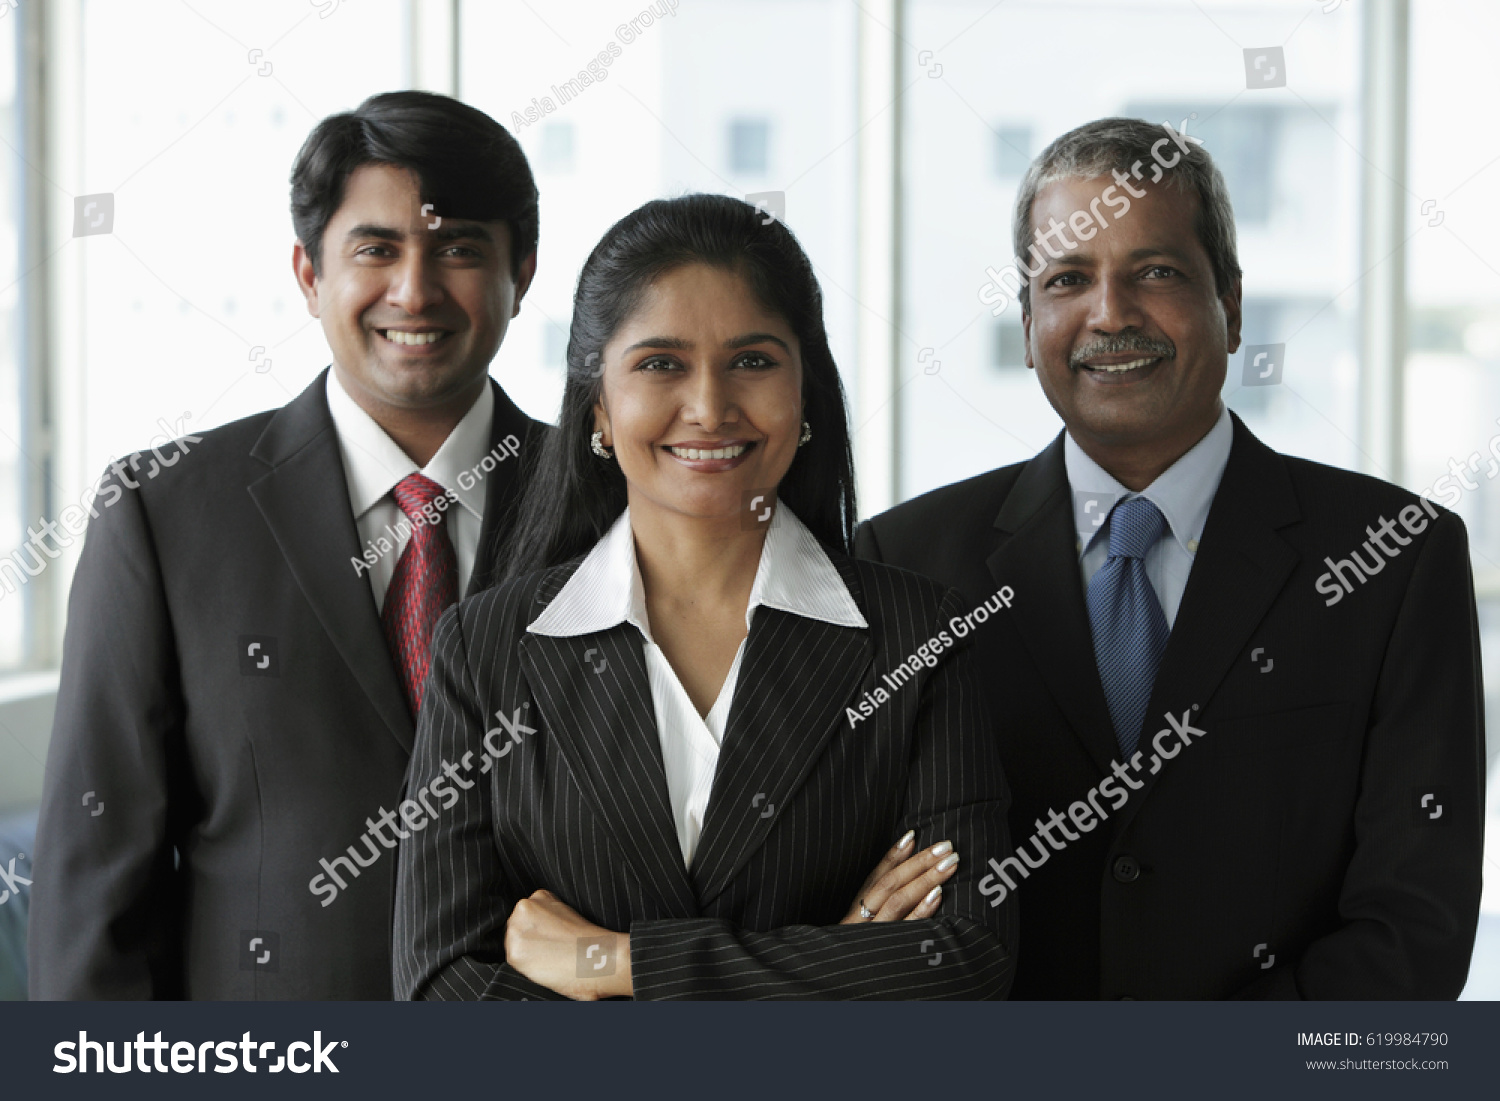 Group Of Professional Multicultural Business Executives In Office